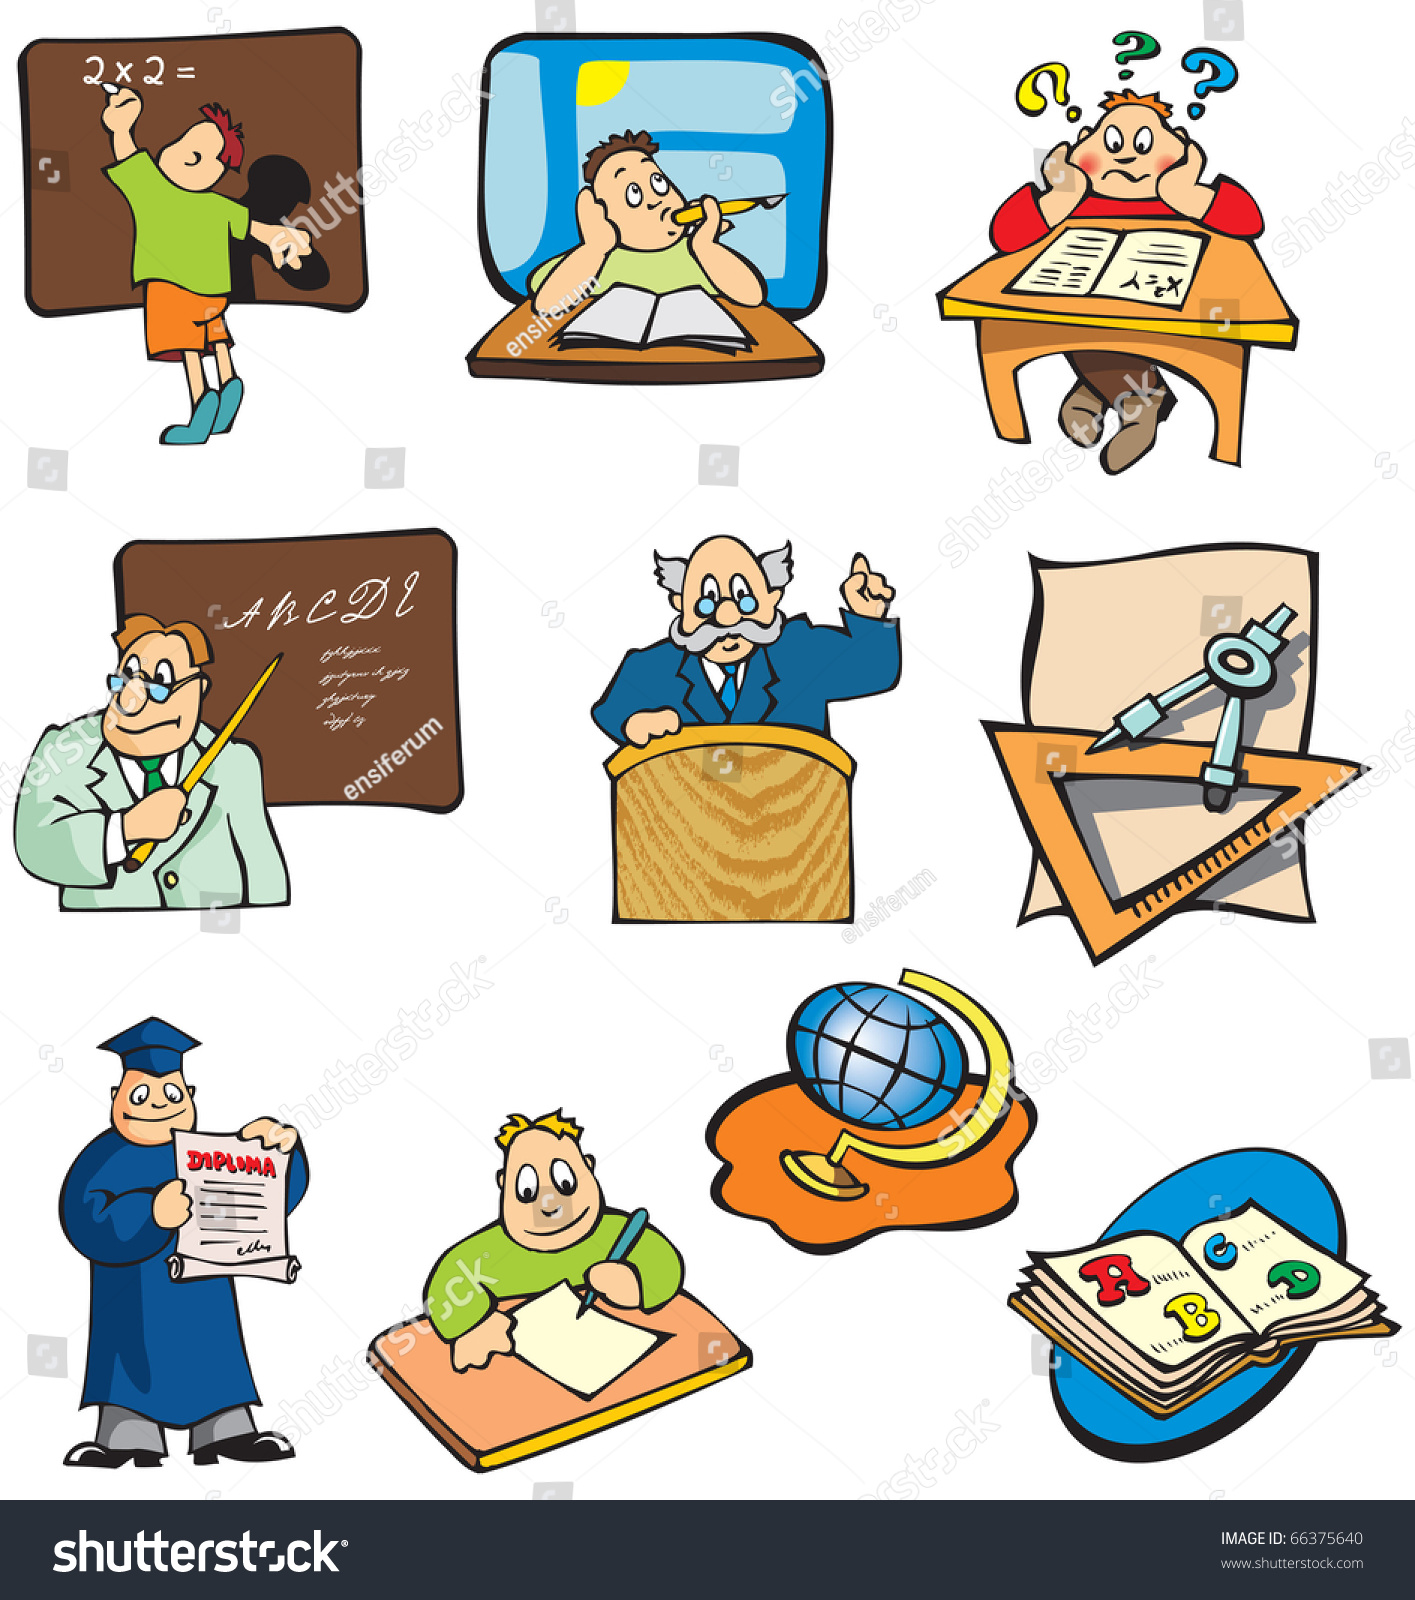 Schulklasse im unterricht clipart  Collection Education Cartoon Pictures Students Teachers ...